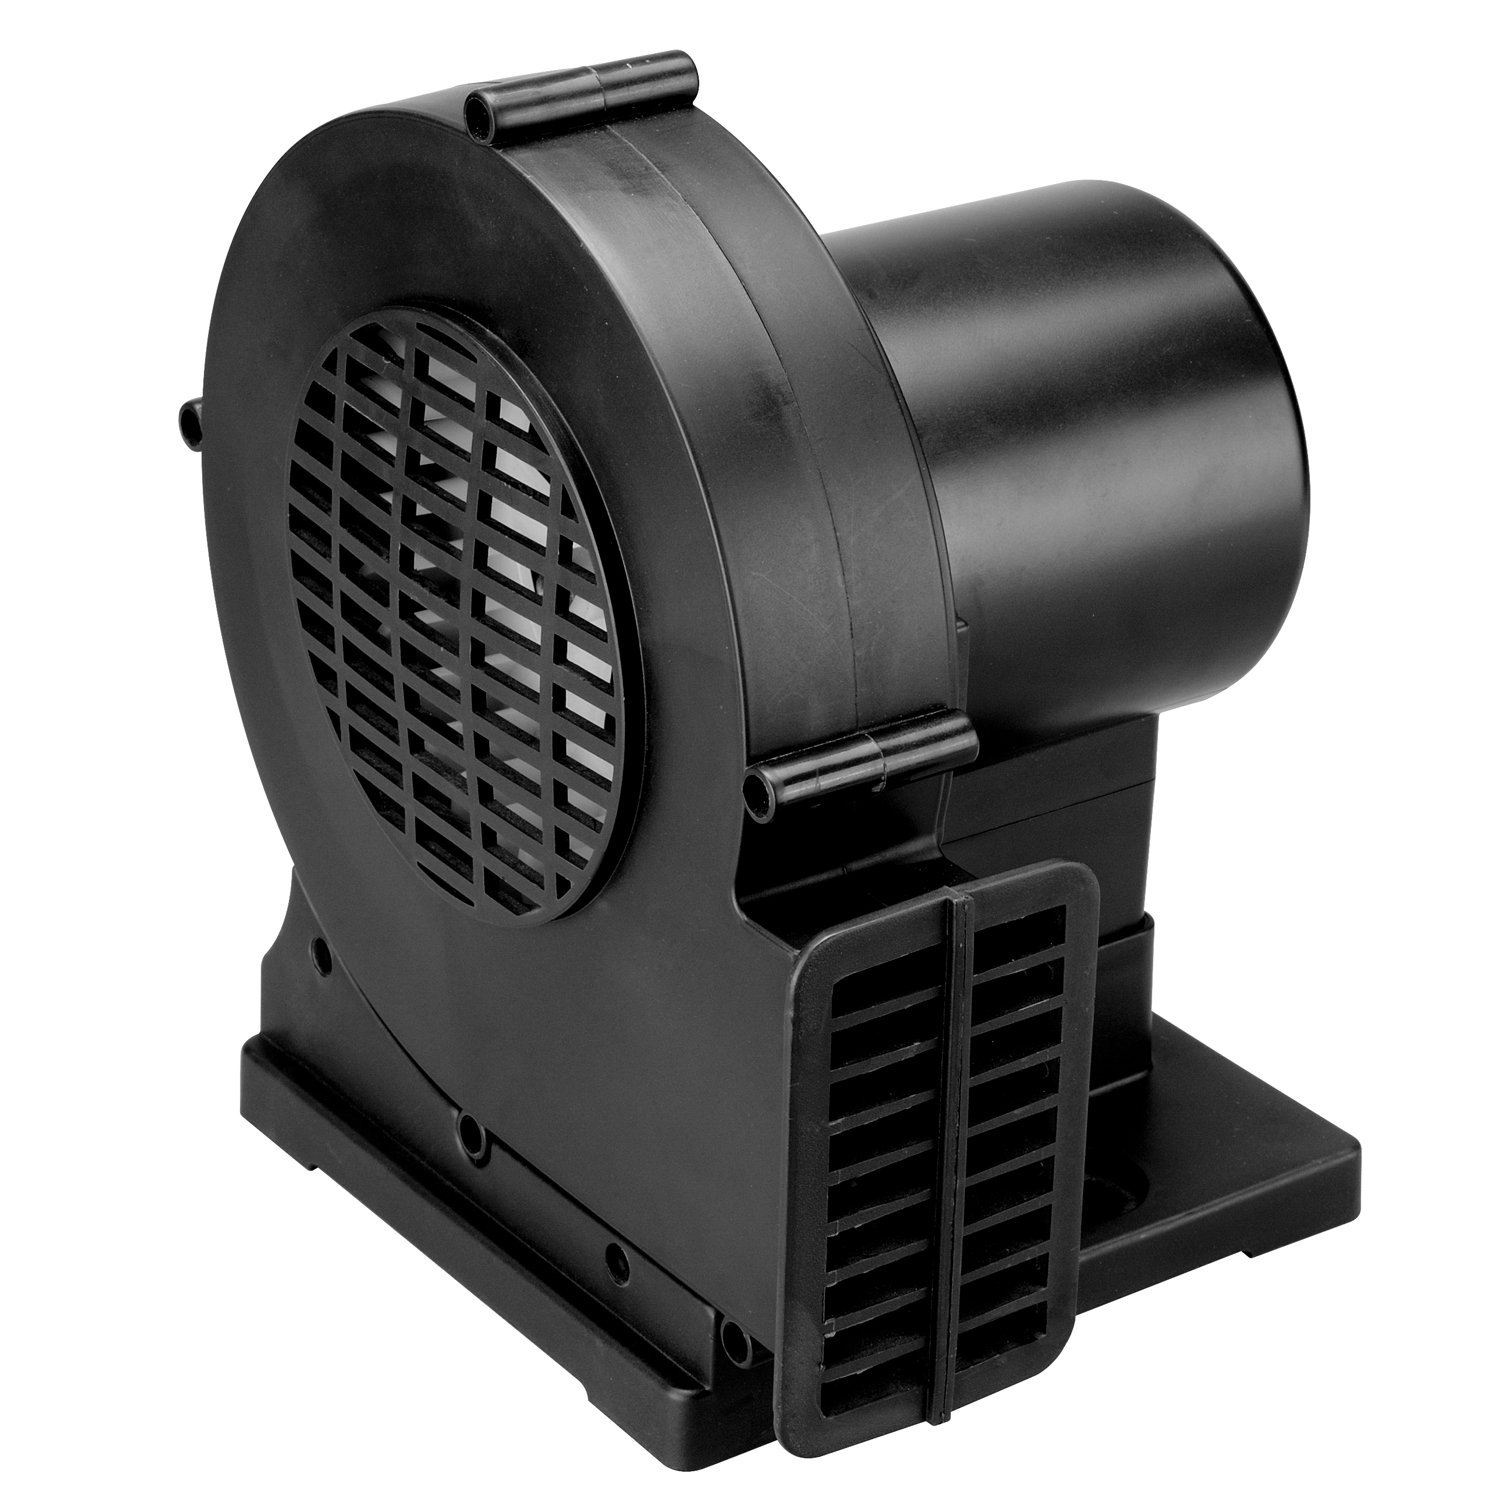 XPOWER BR-2C01A 1/8 HP, 120 CFM, 0.8 Amp Inflatable Blower